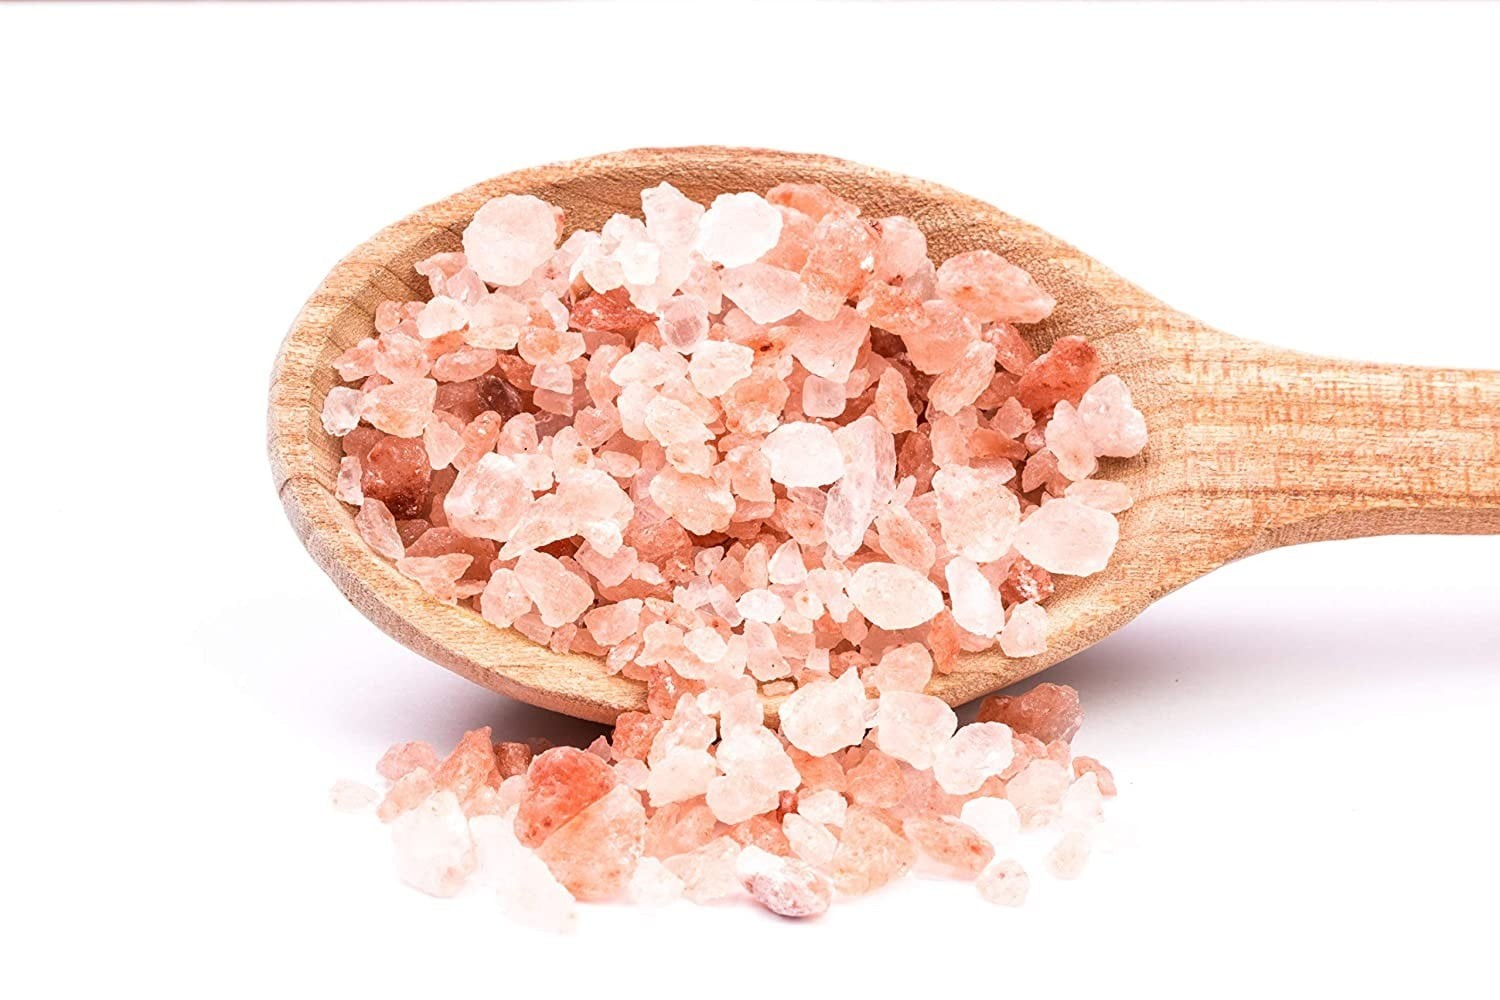 Pink Himalayan Salt on a wooden spoon.